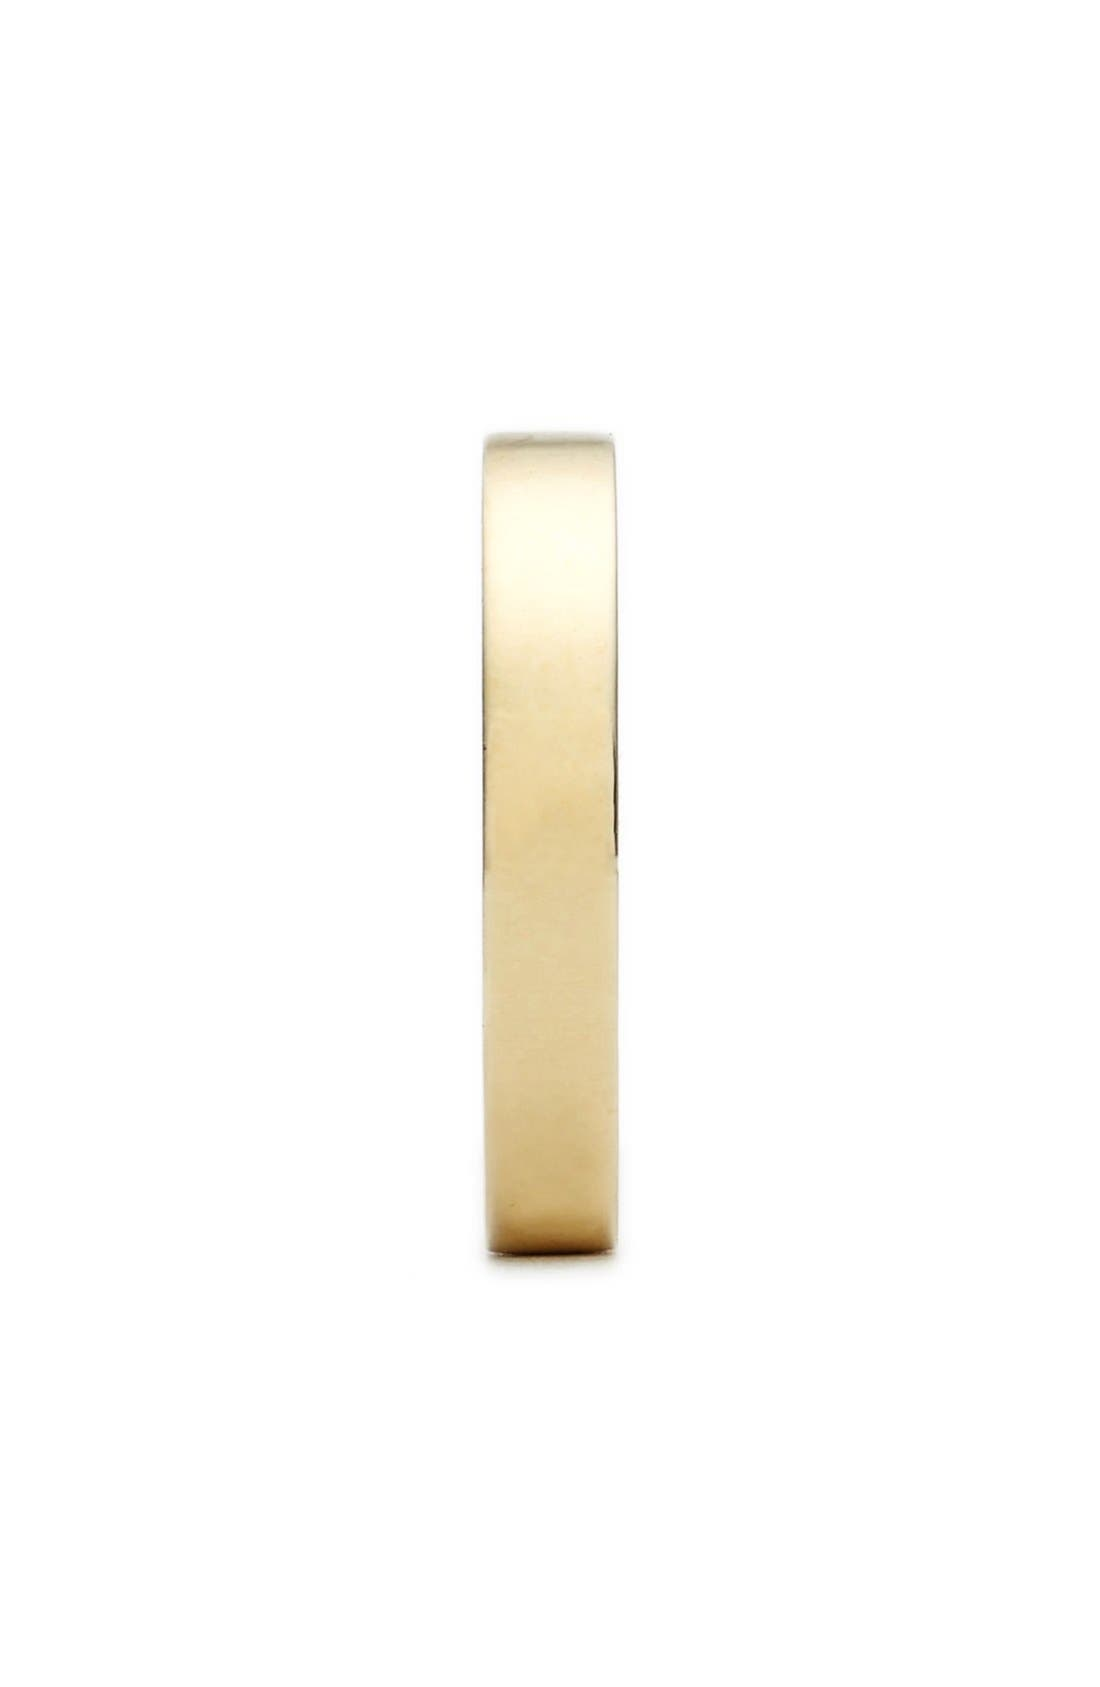 'Symphony - Golden Gate' Band Ring,                             Alternate thumbnail 2, color,                             YELLOW GOLD